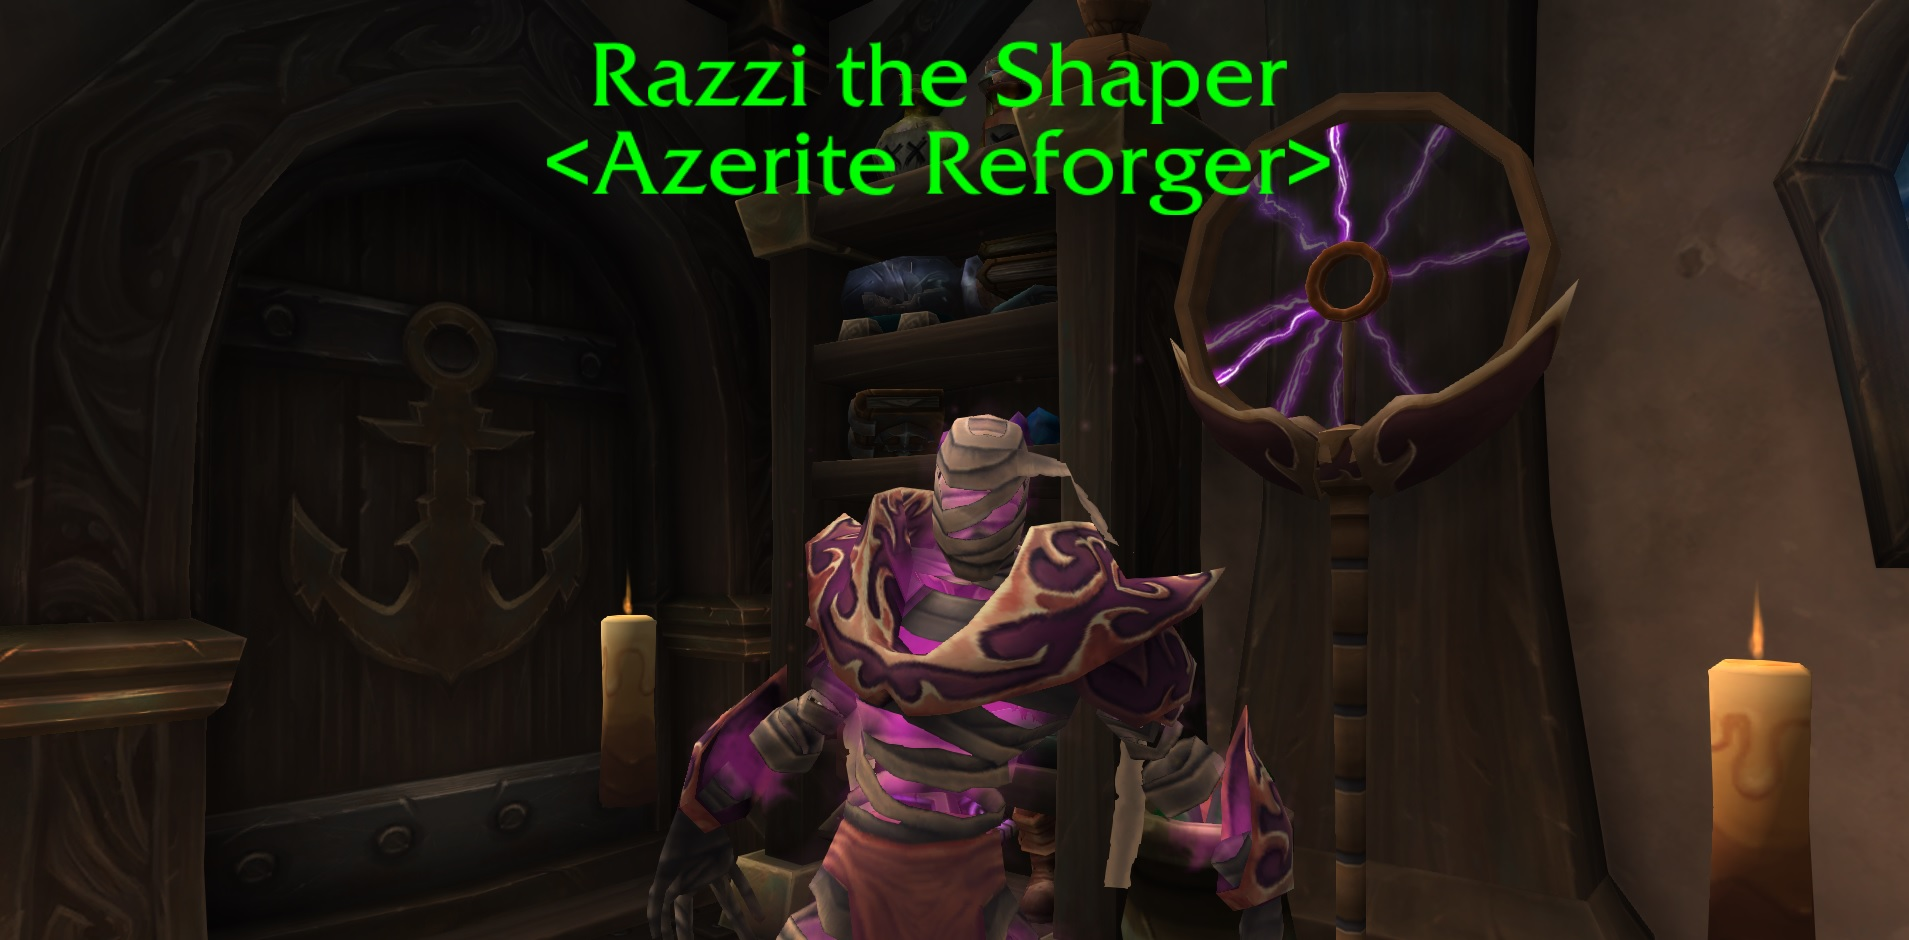 WoW Reforge Ethereal